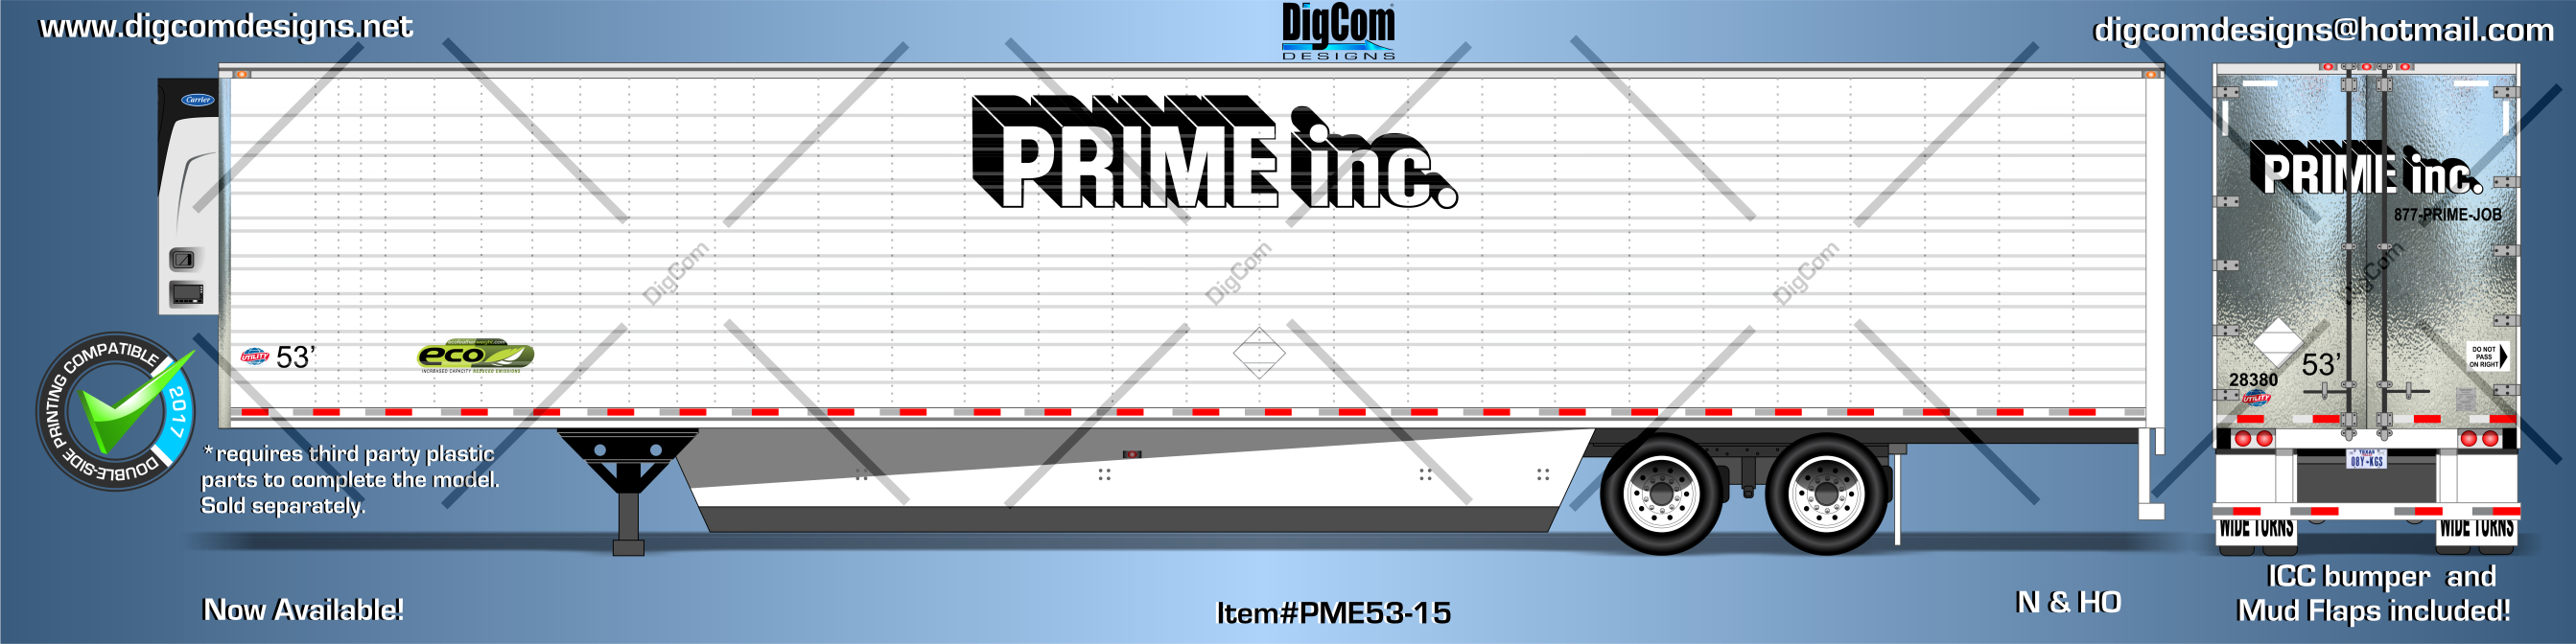 PRIME INC DESIGN.png